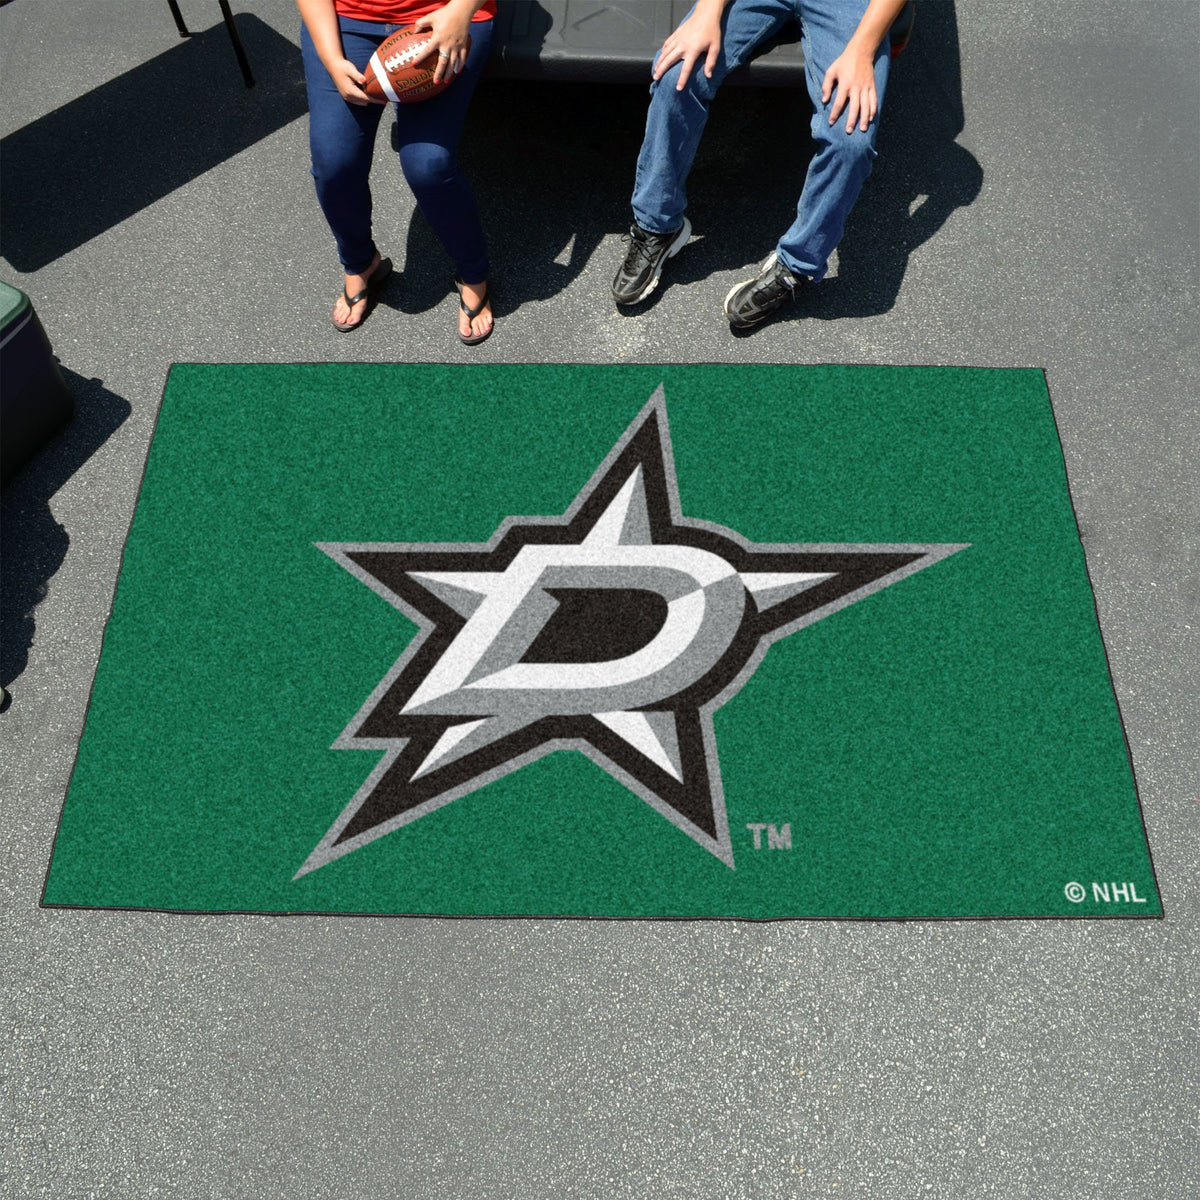 NHL - Ulti-Mat NHL Mats, Rectangular Mats, Ulti-Mat, NHL, Home Fan Mats Dallas Stars